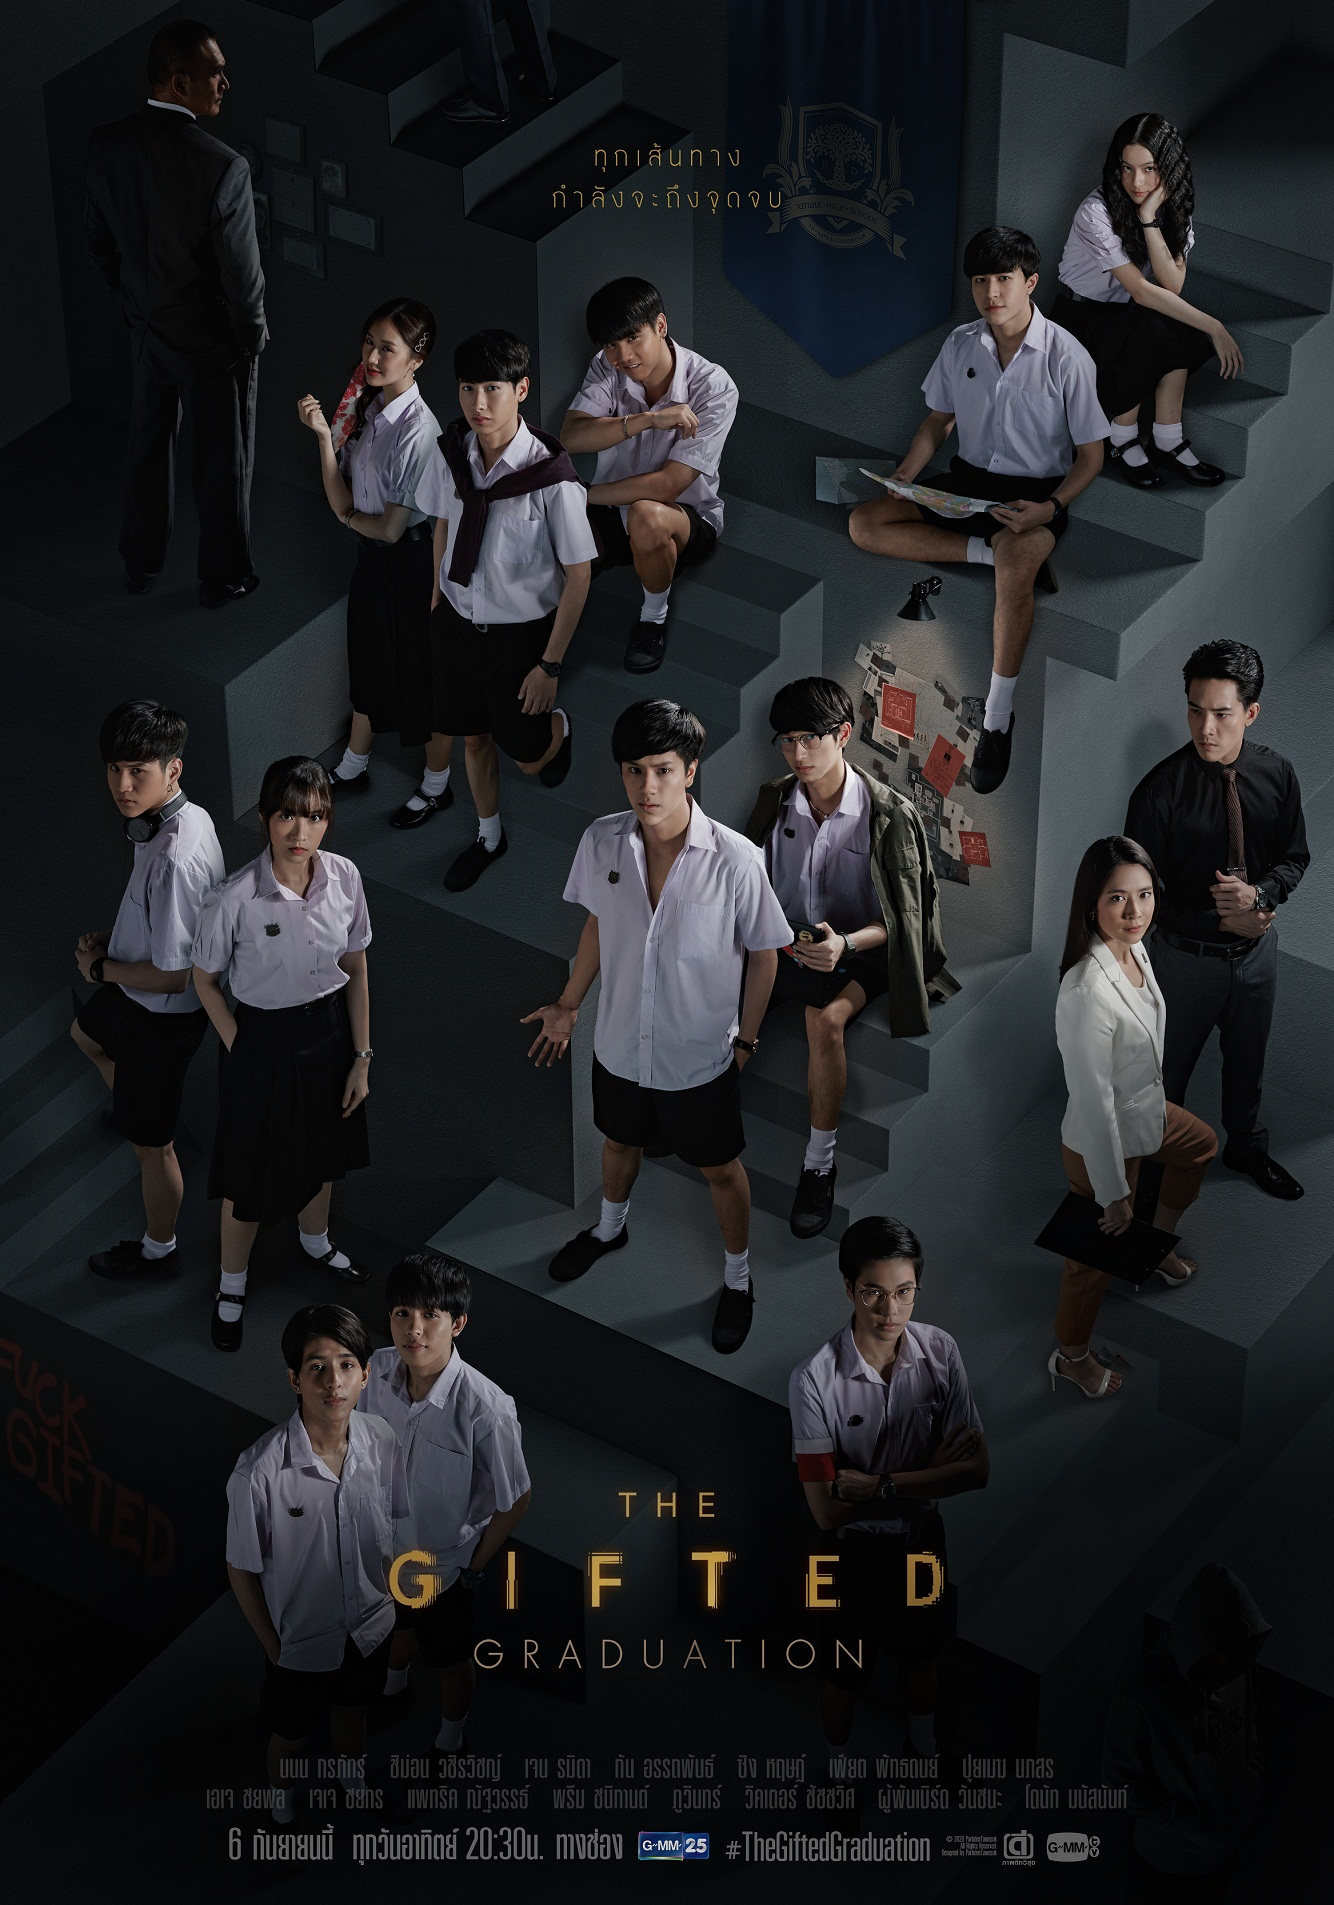 The Gifted Graduation